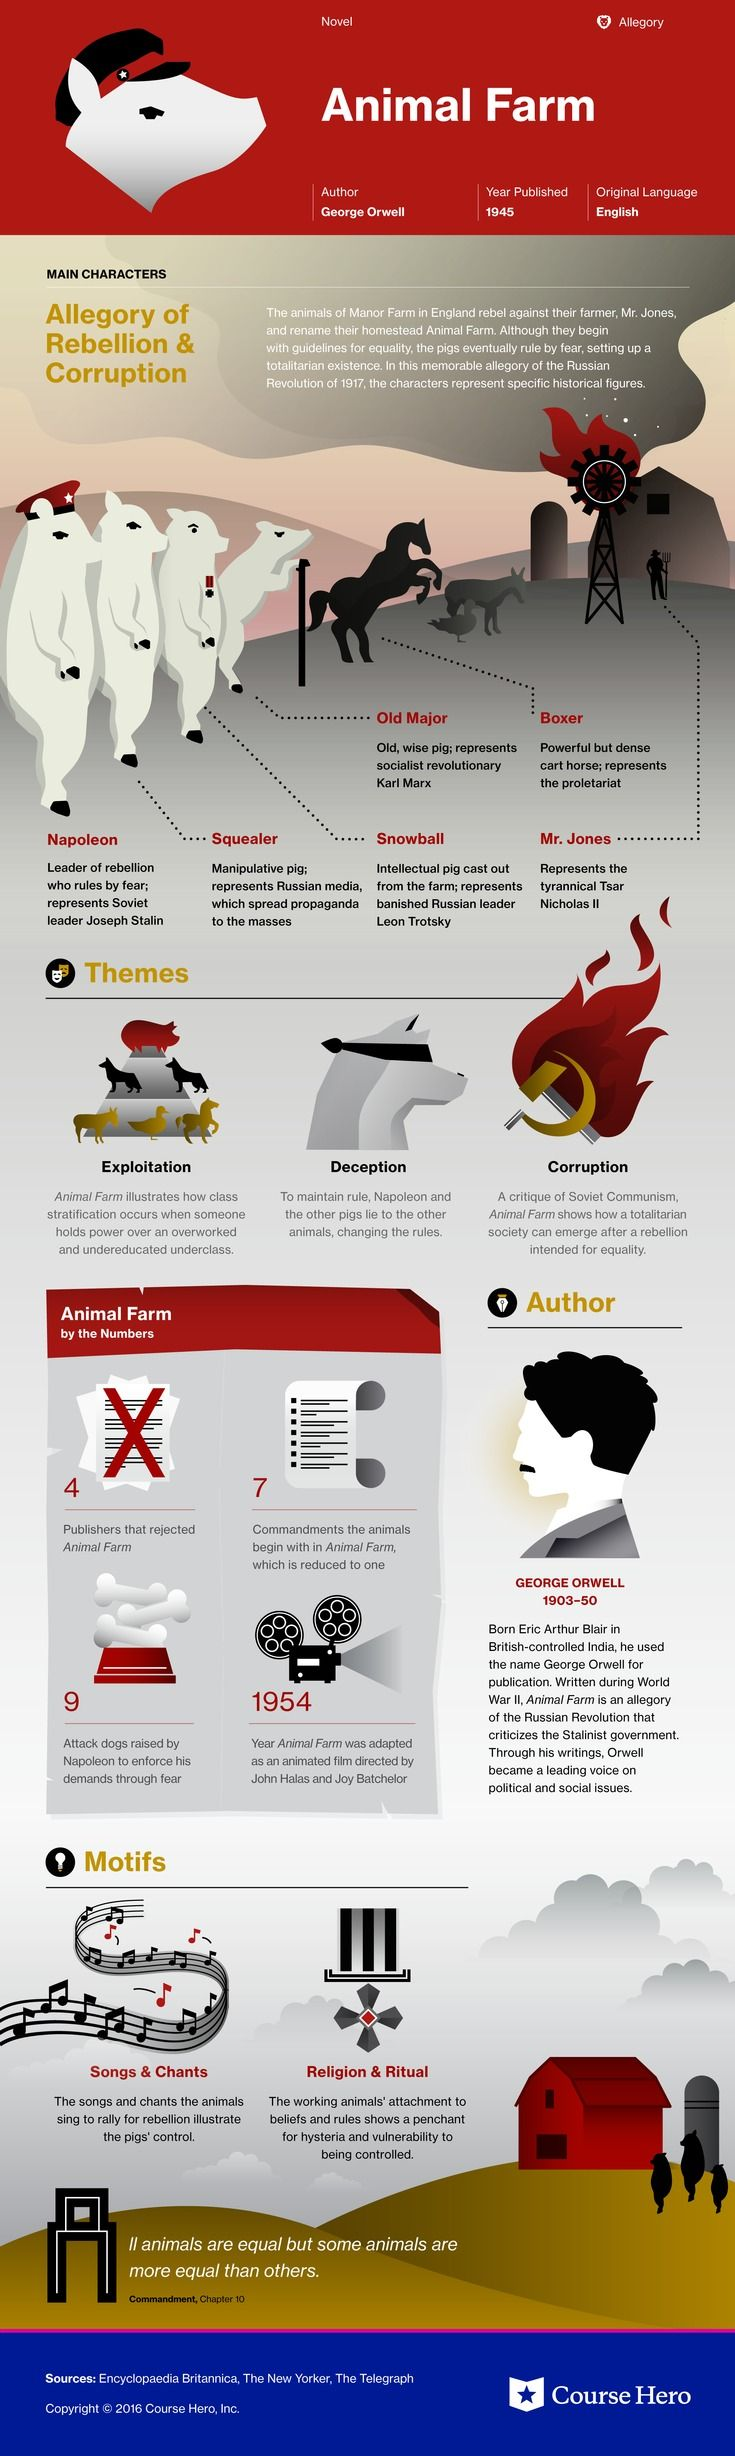 best ideas about animal farm george orwell 78bd12f06d9b6e2f568d8e9b9a1a2a4d jpg